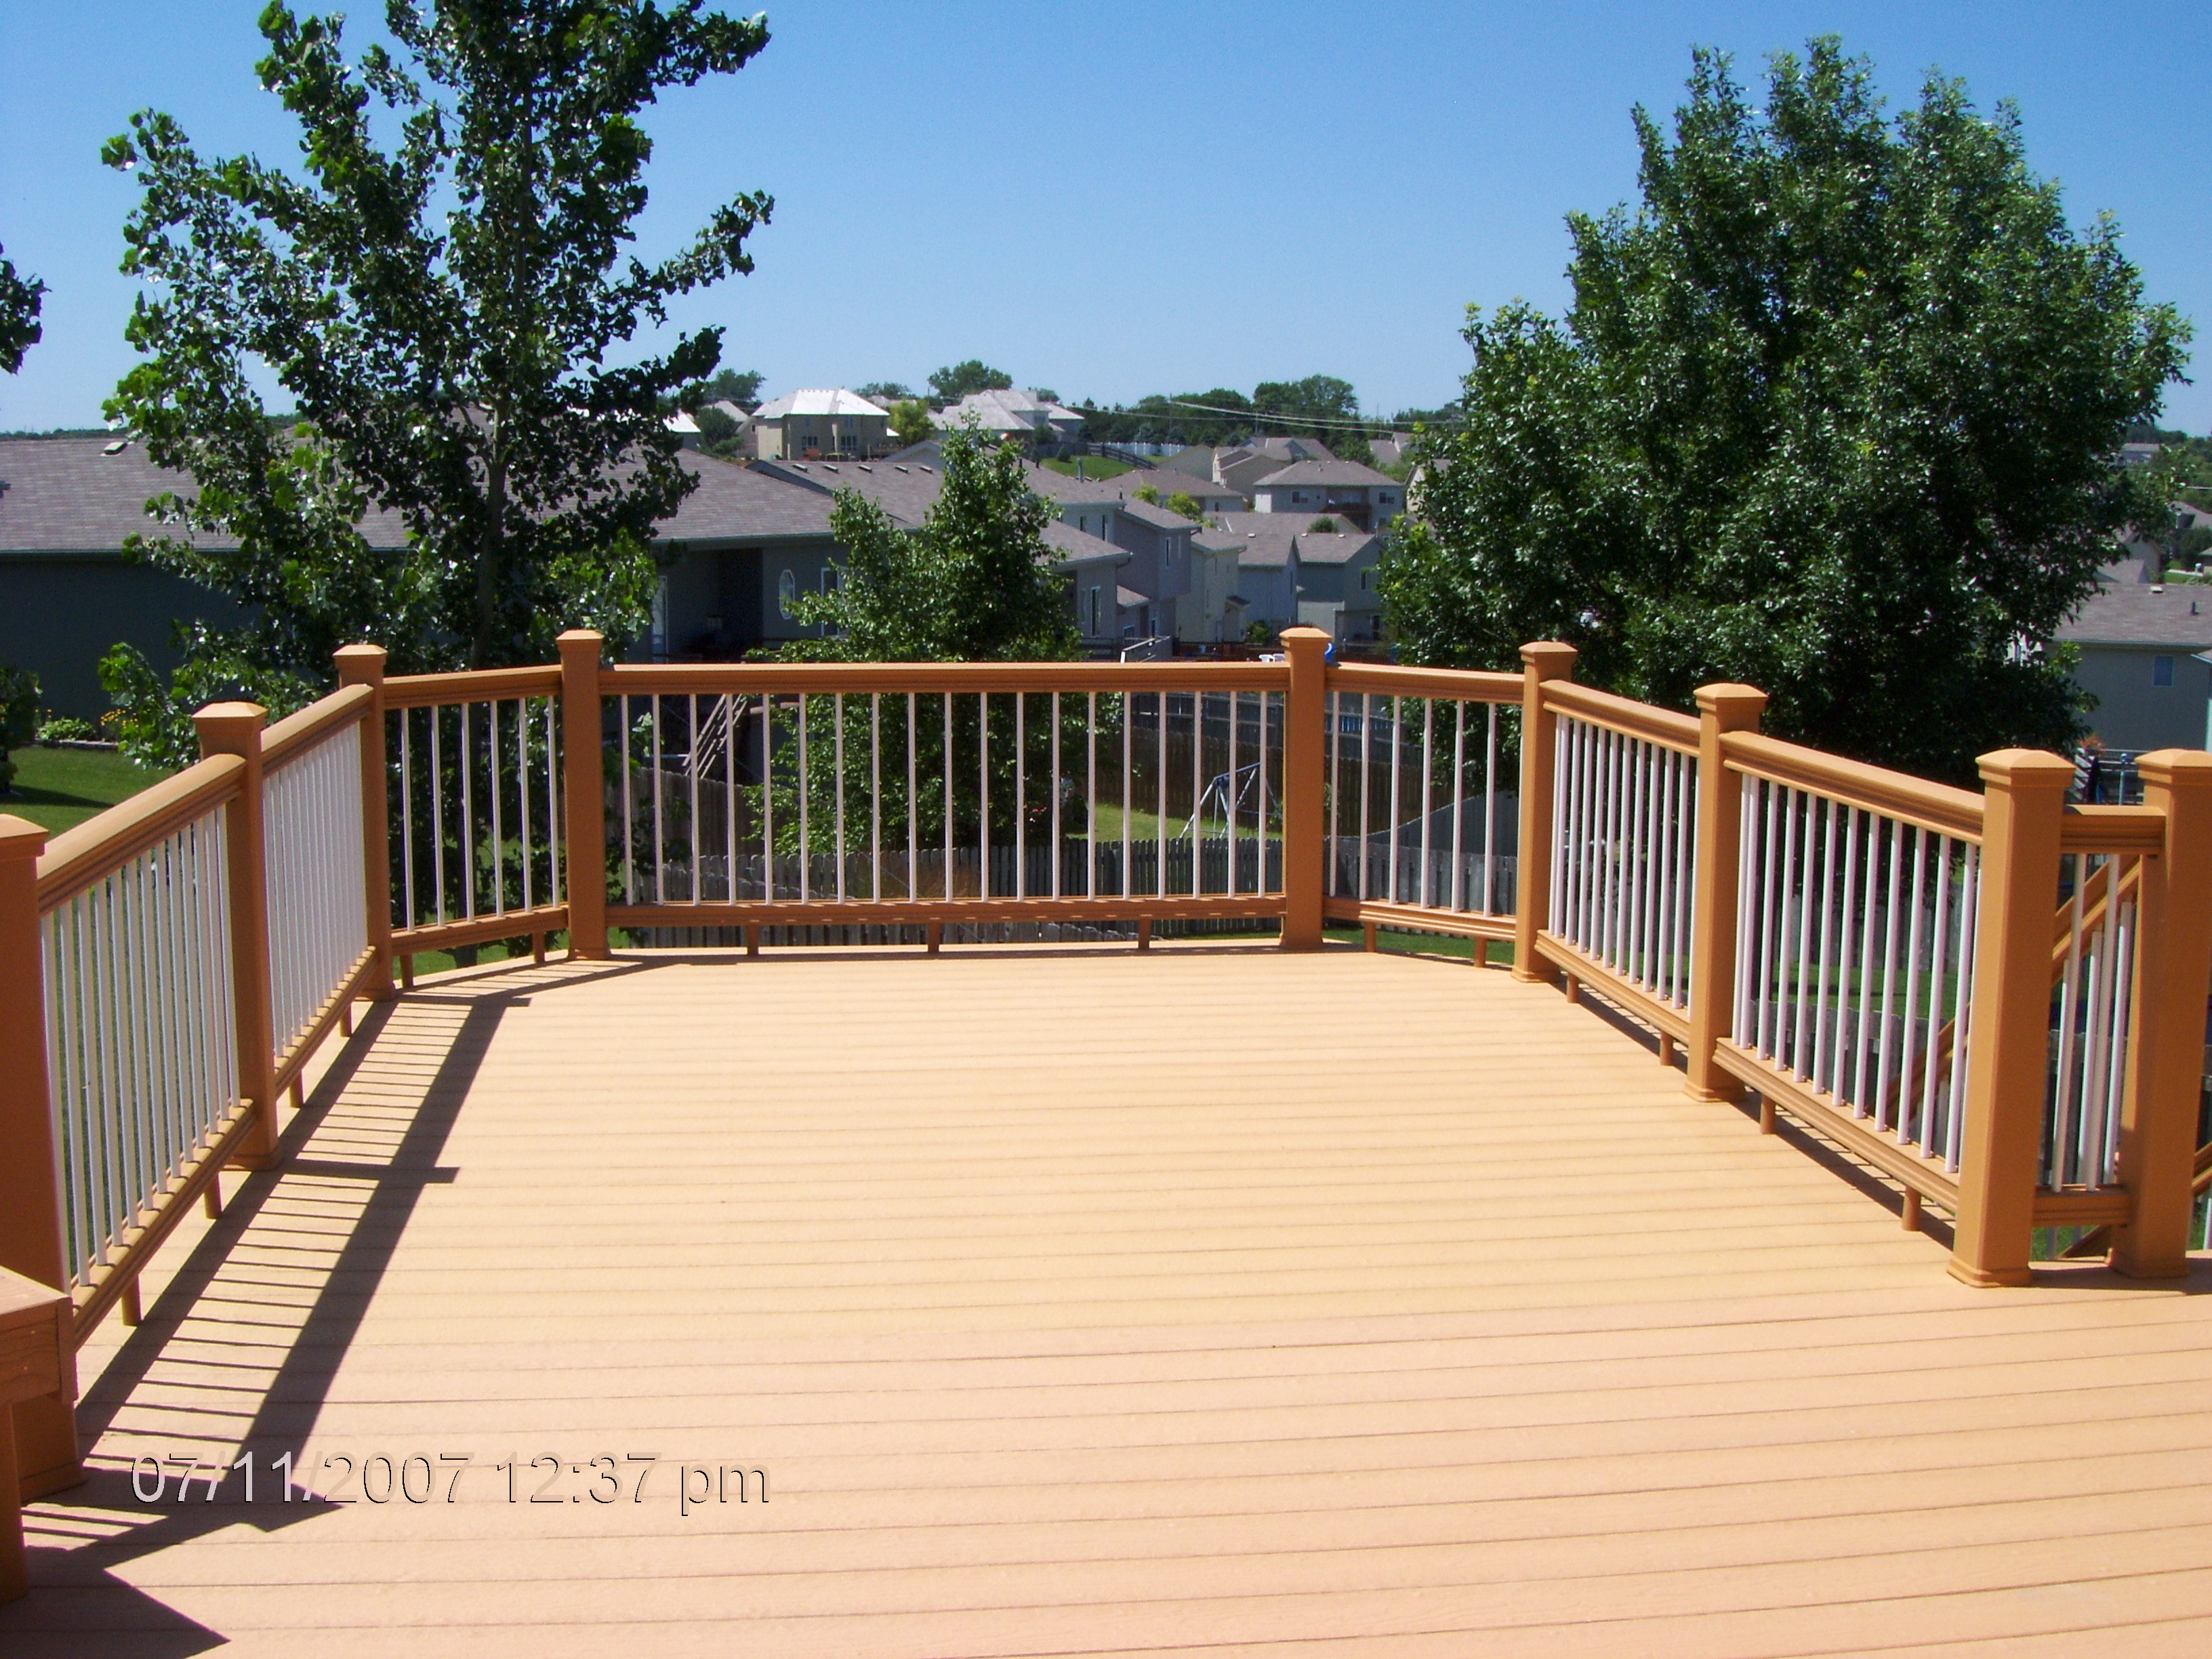 mocca evergrain decking matched with white and goldenrod railing for patio ideas